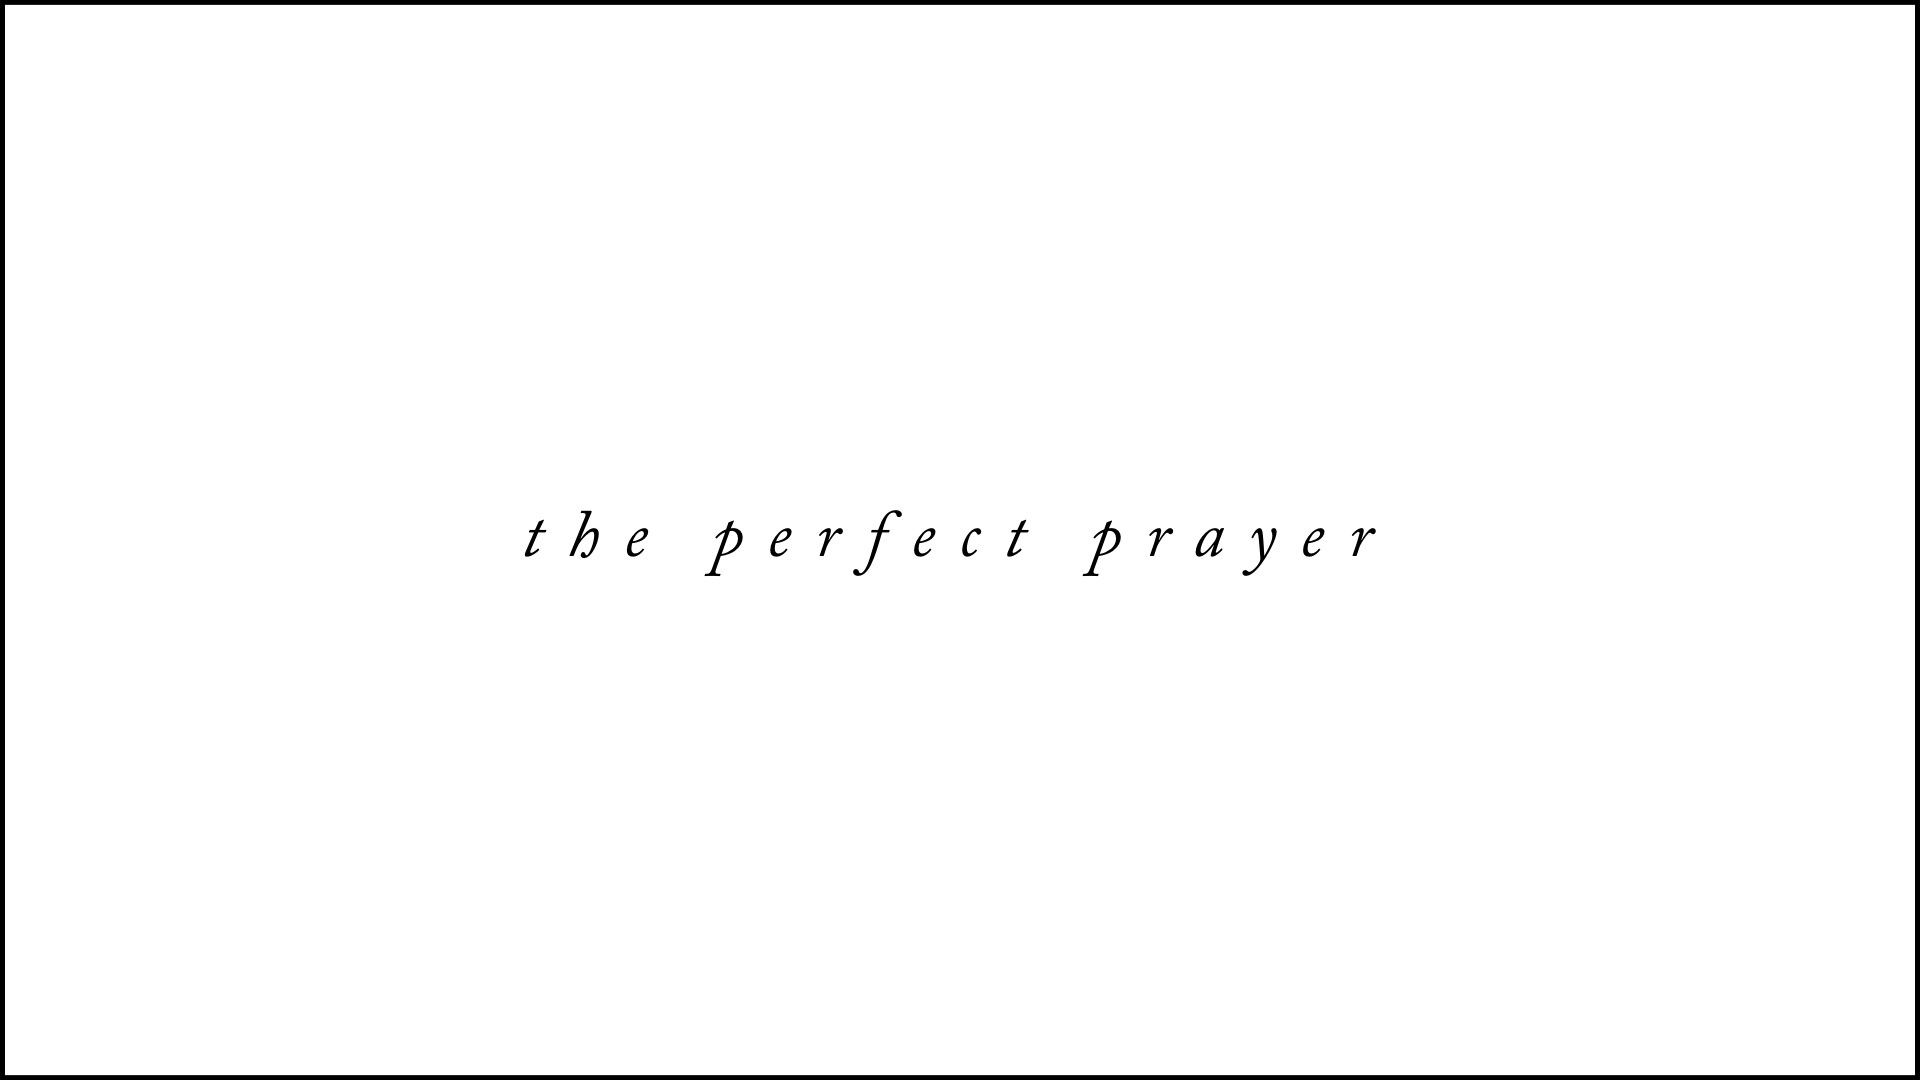 Learn how to pray the perfect prayer.